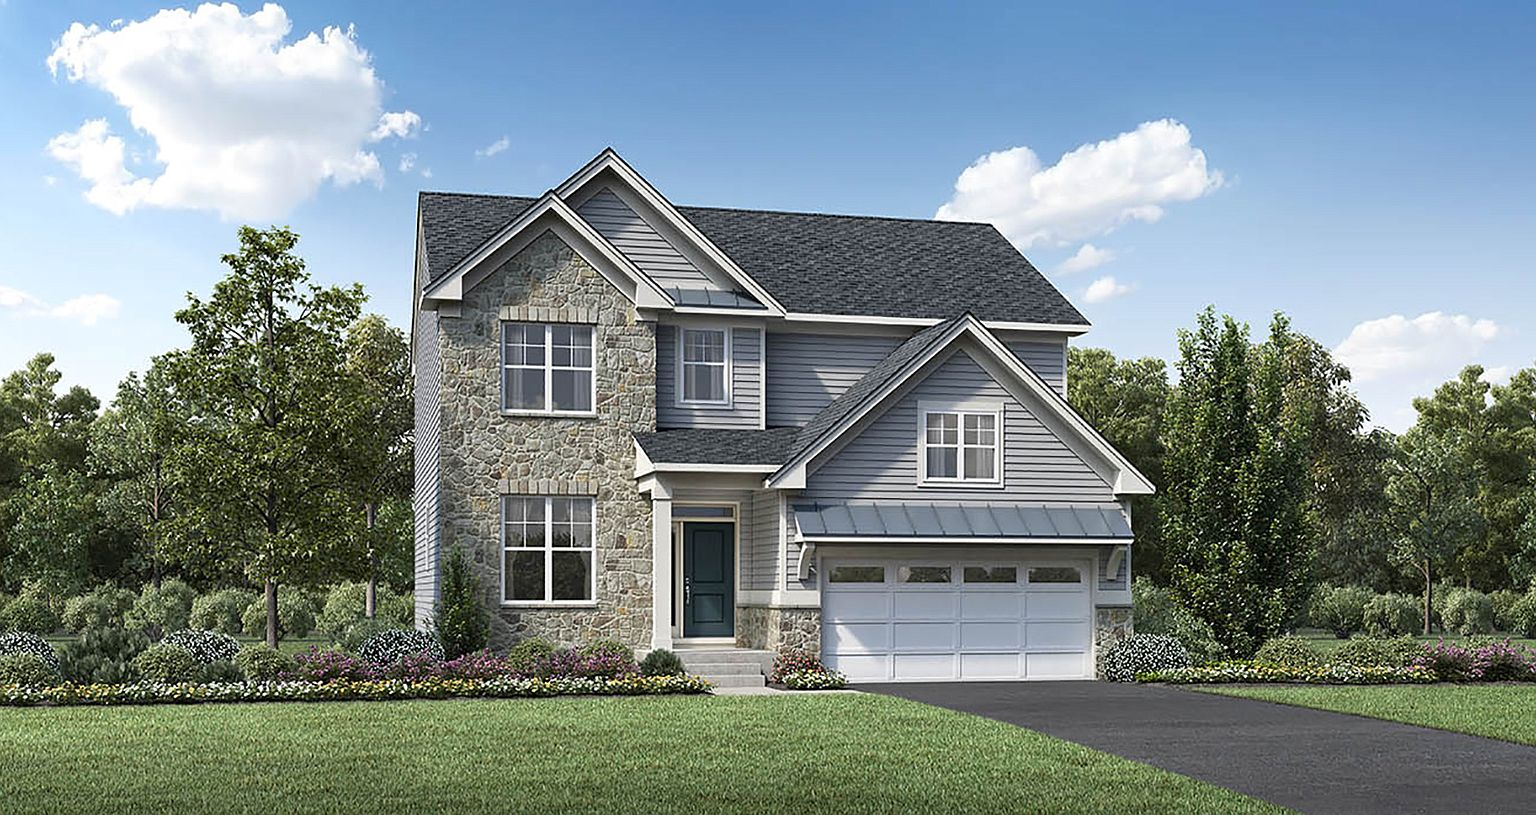 Raines Plan Reserve At Emerson Farm Heritage Collection Warrington Pa 18976 Zillow